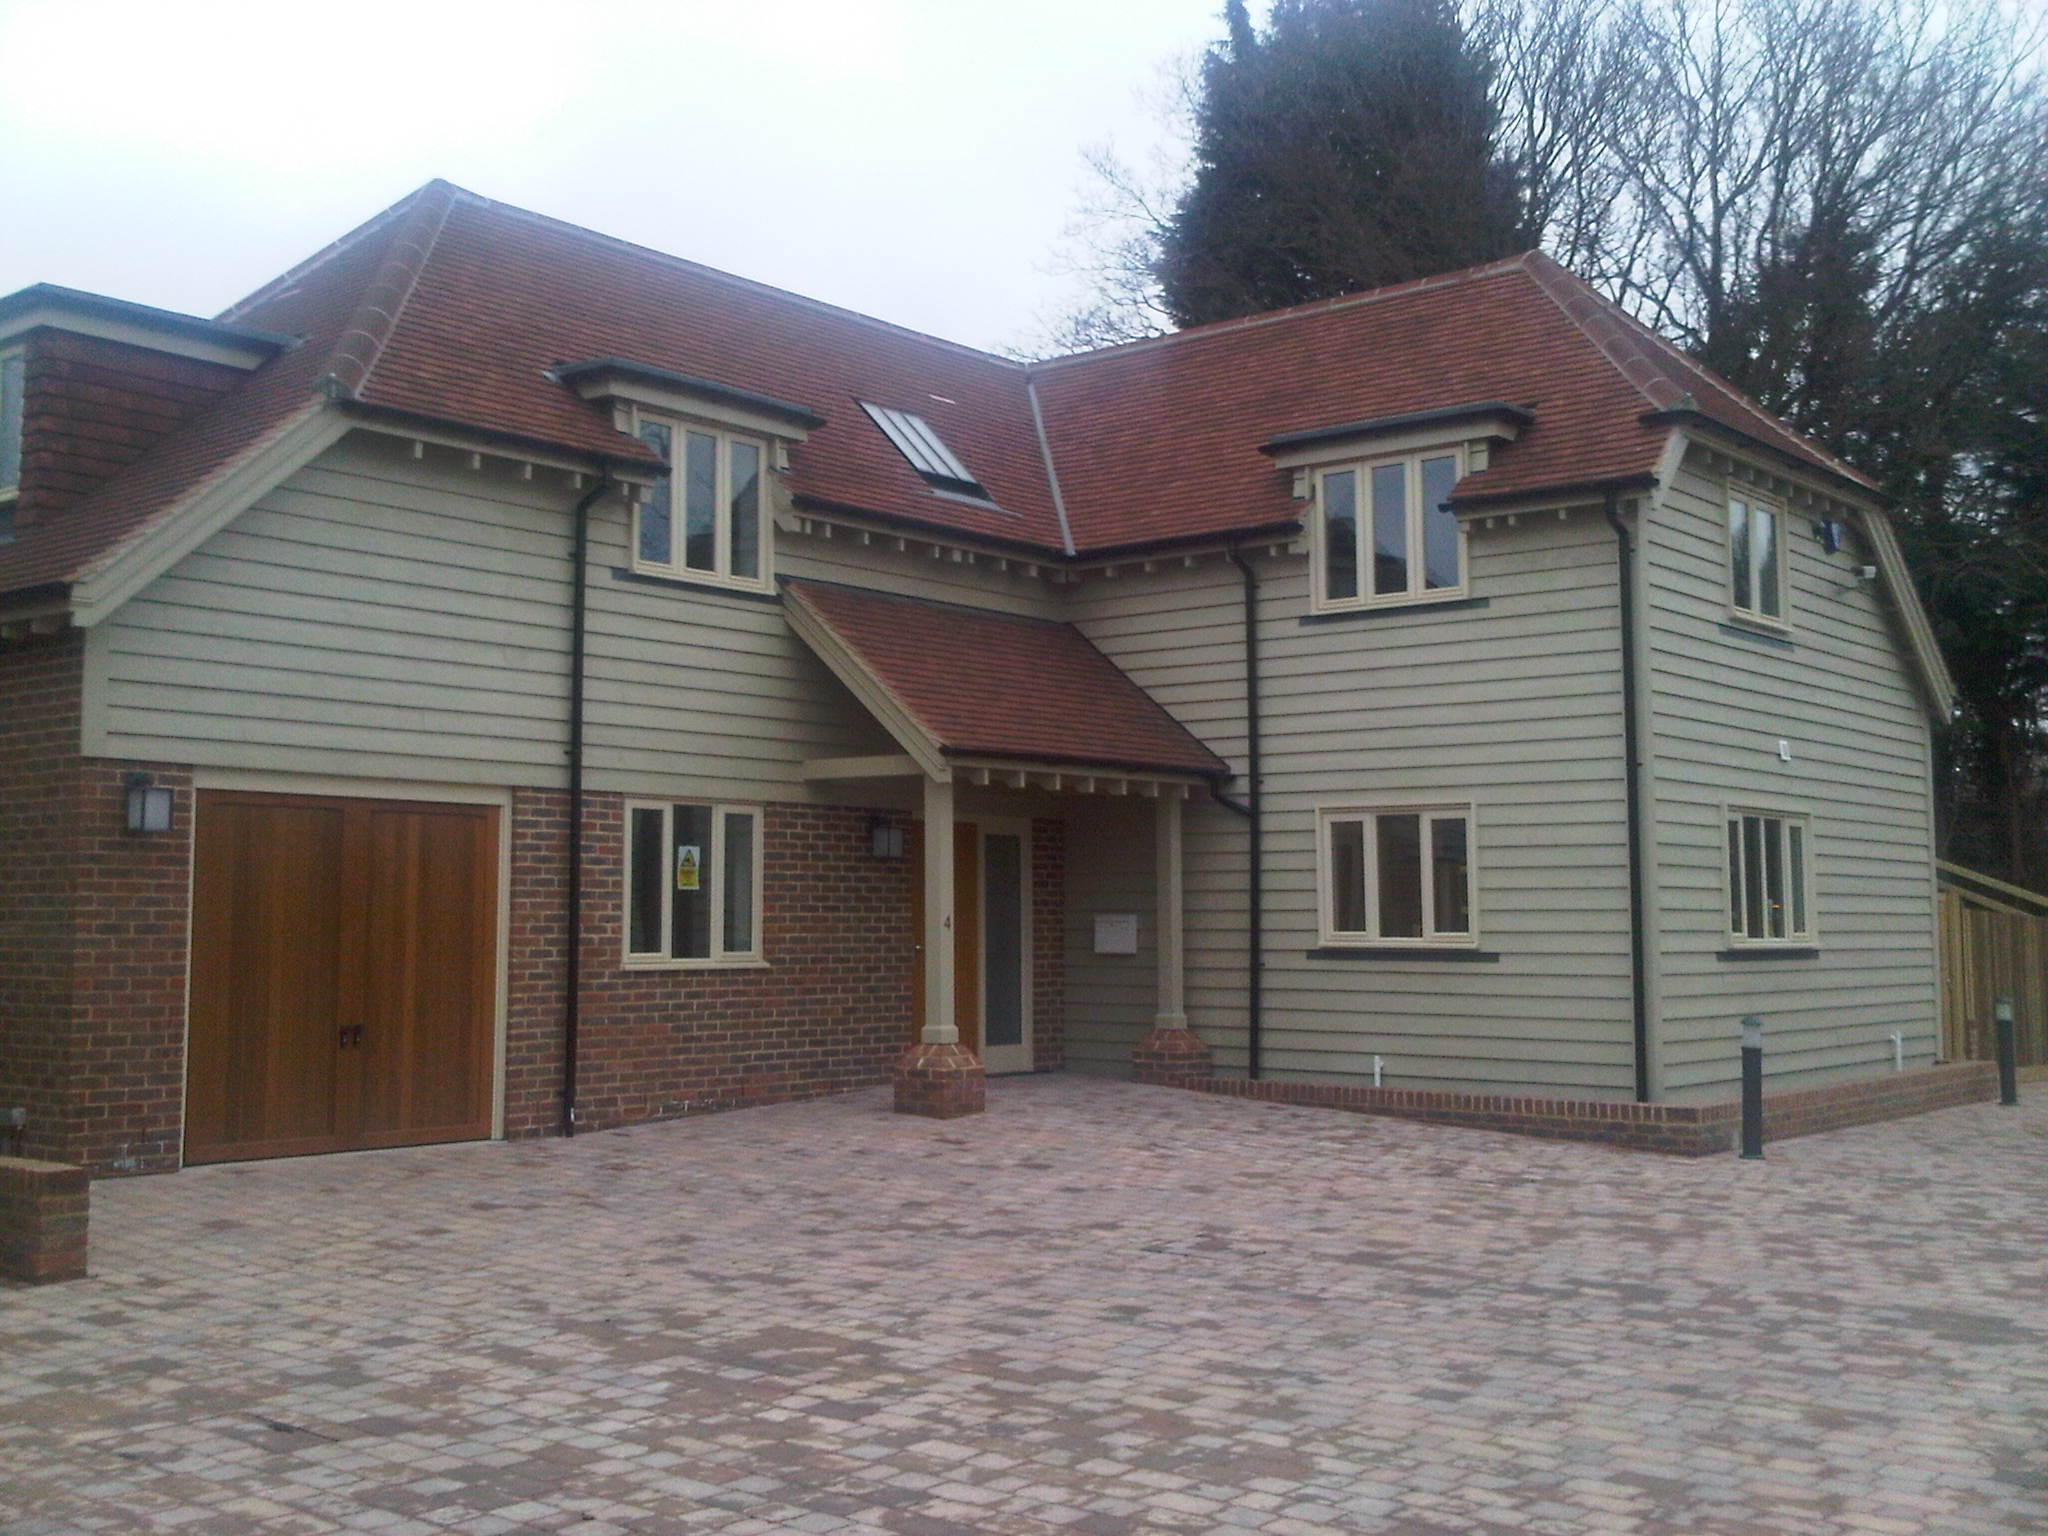 Manor Close, Billingshurst